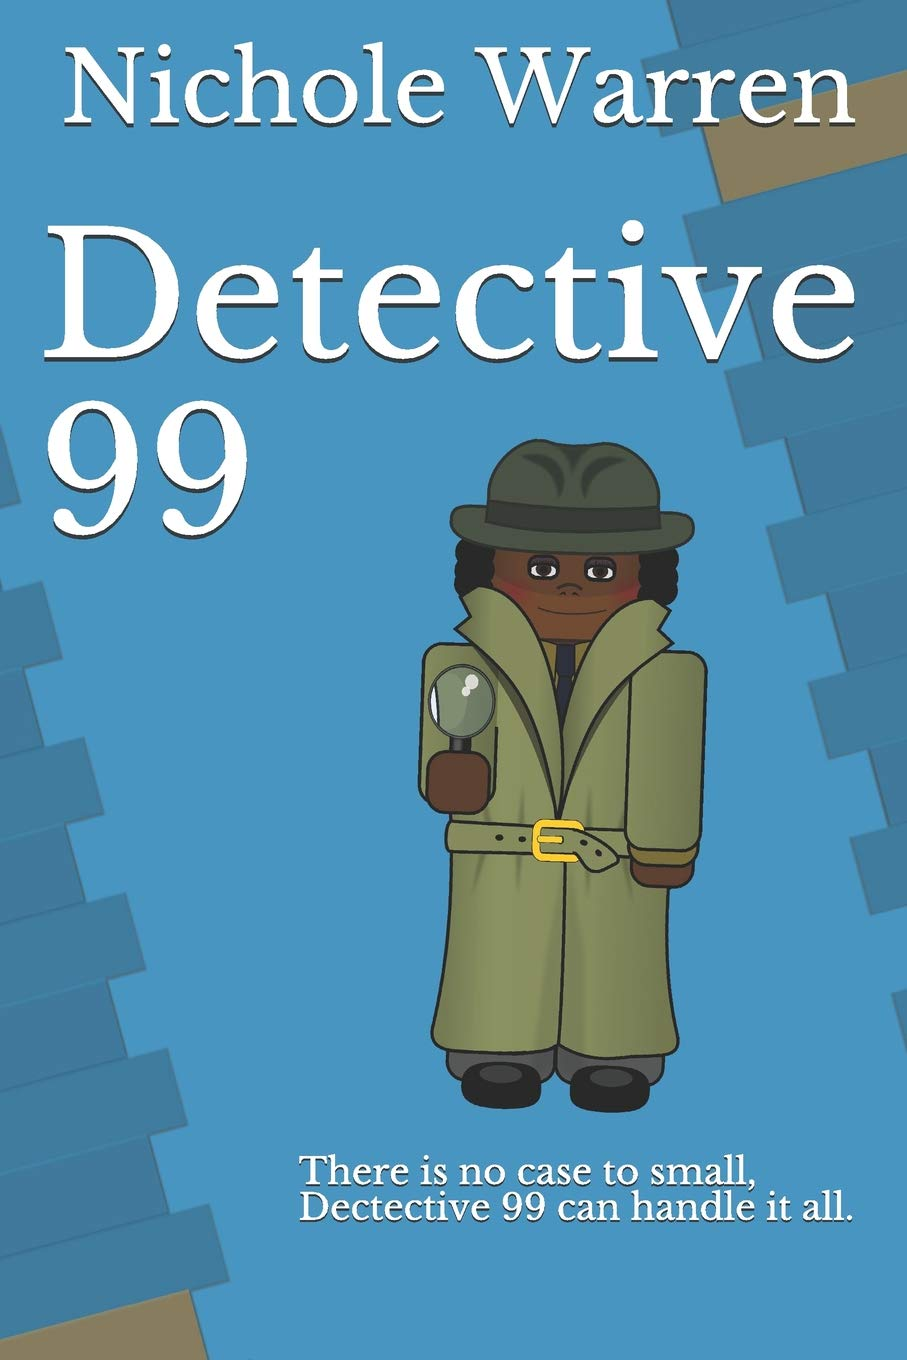 Detective 99: There is no case to small, dectective 99 can handle it all. Paperback – Large Print, August 11, 2018